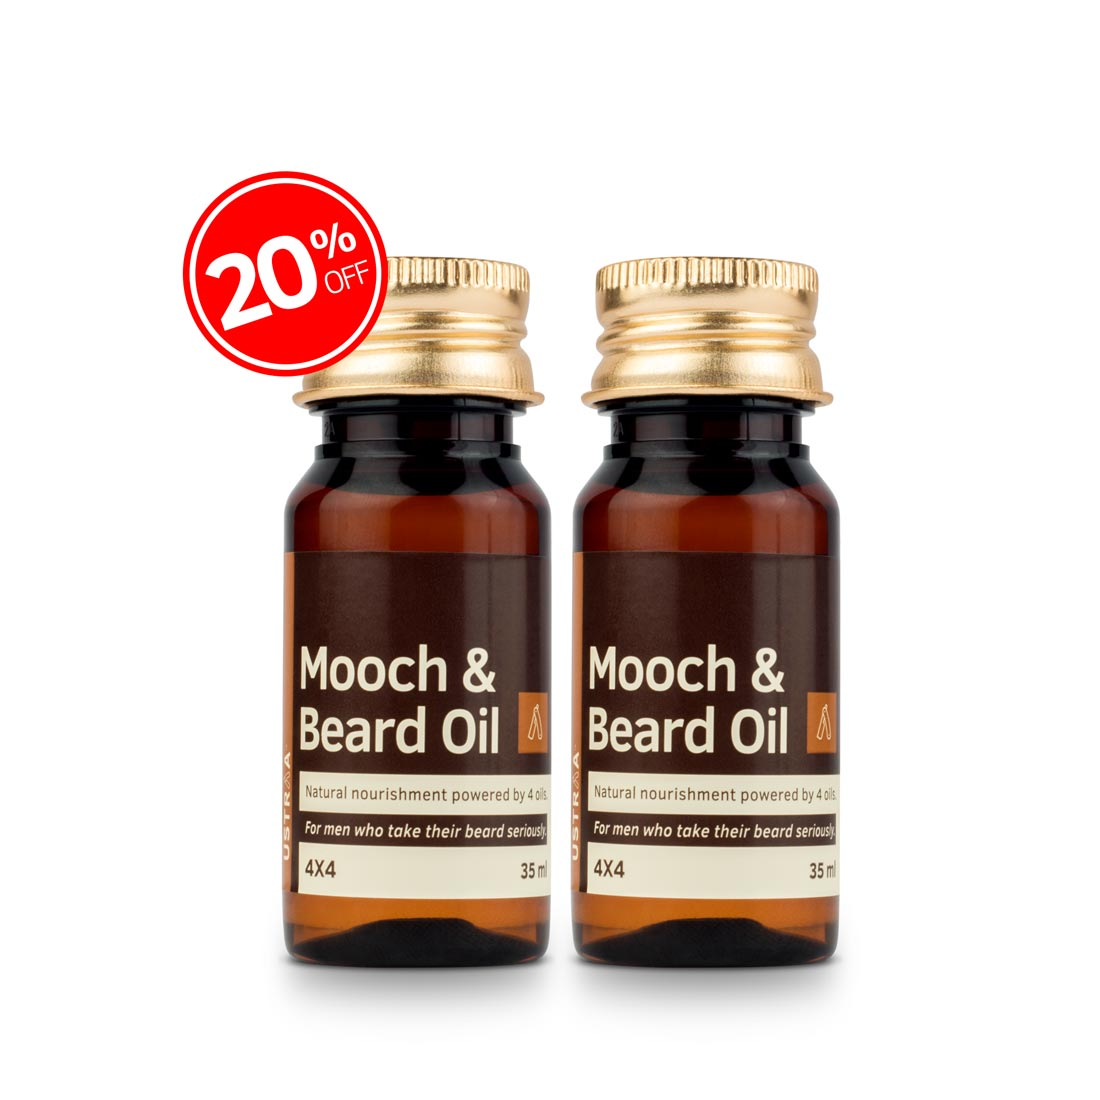 Beard & Mooch Oil 4x4 - Set of 2